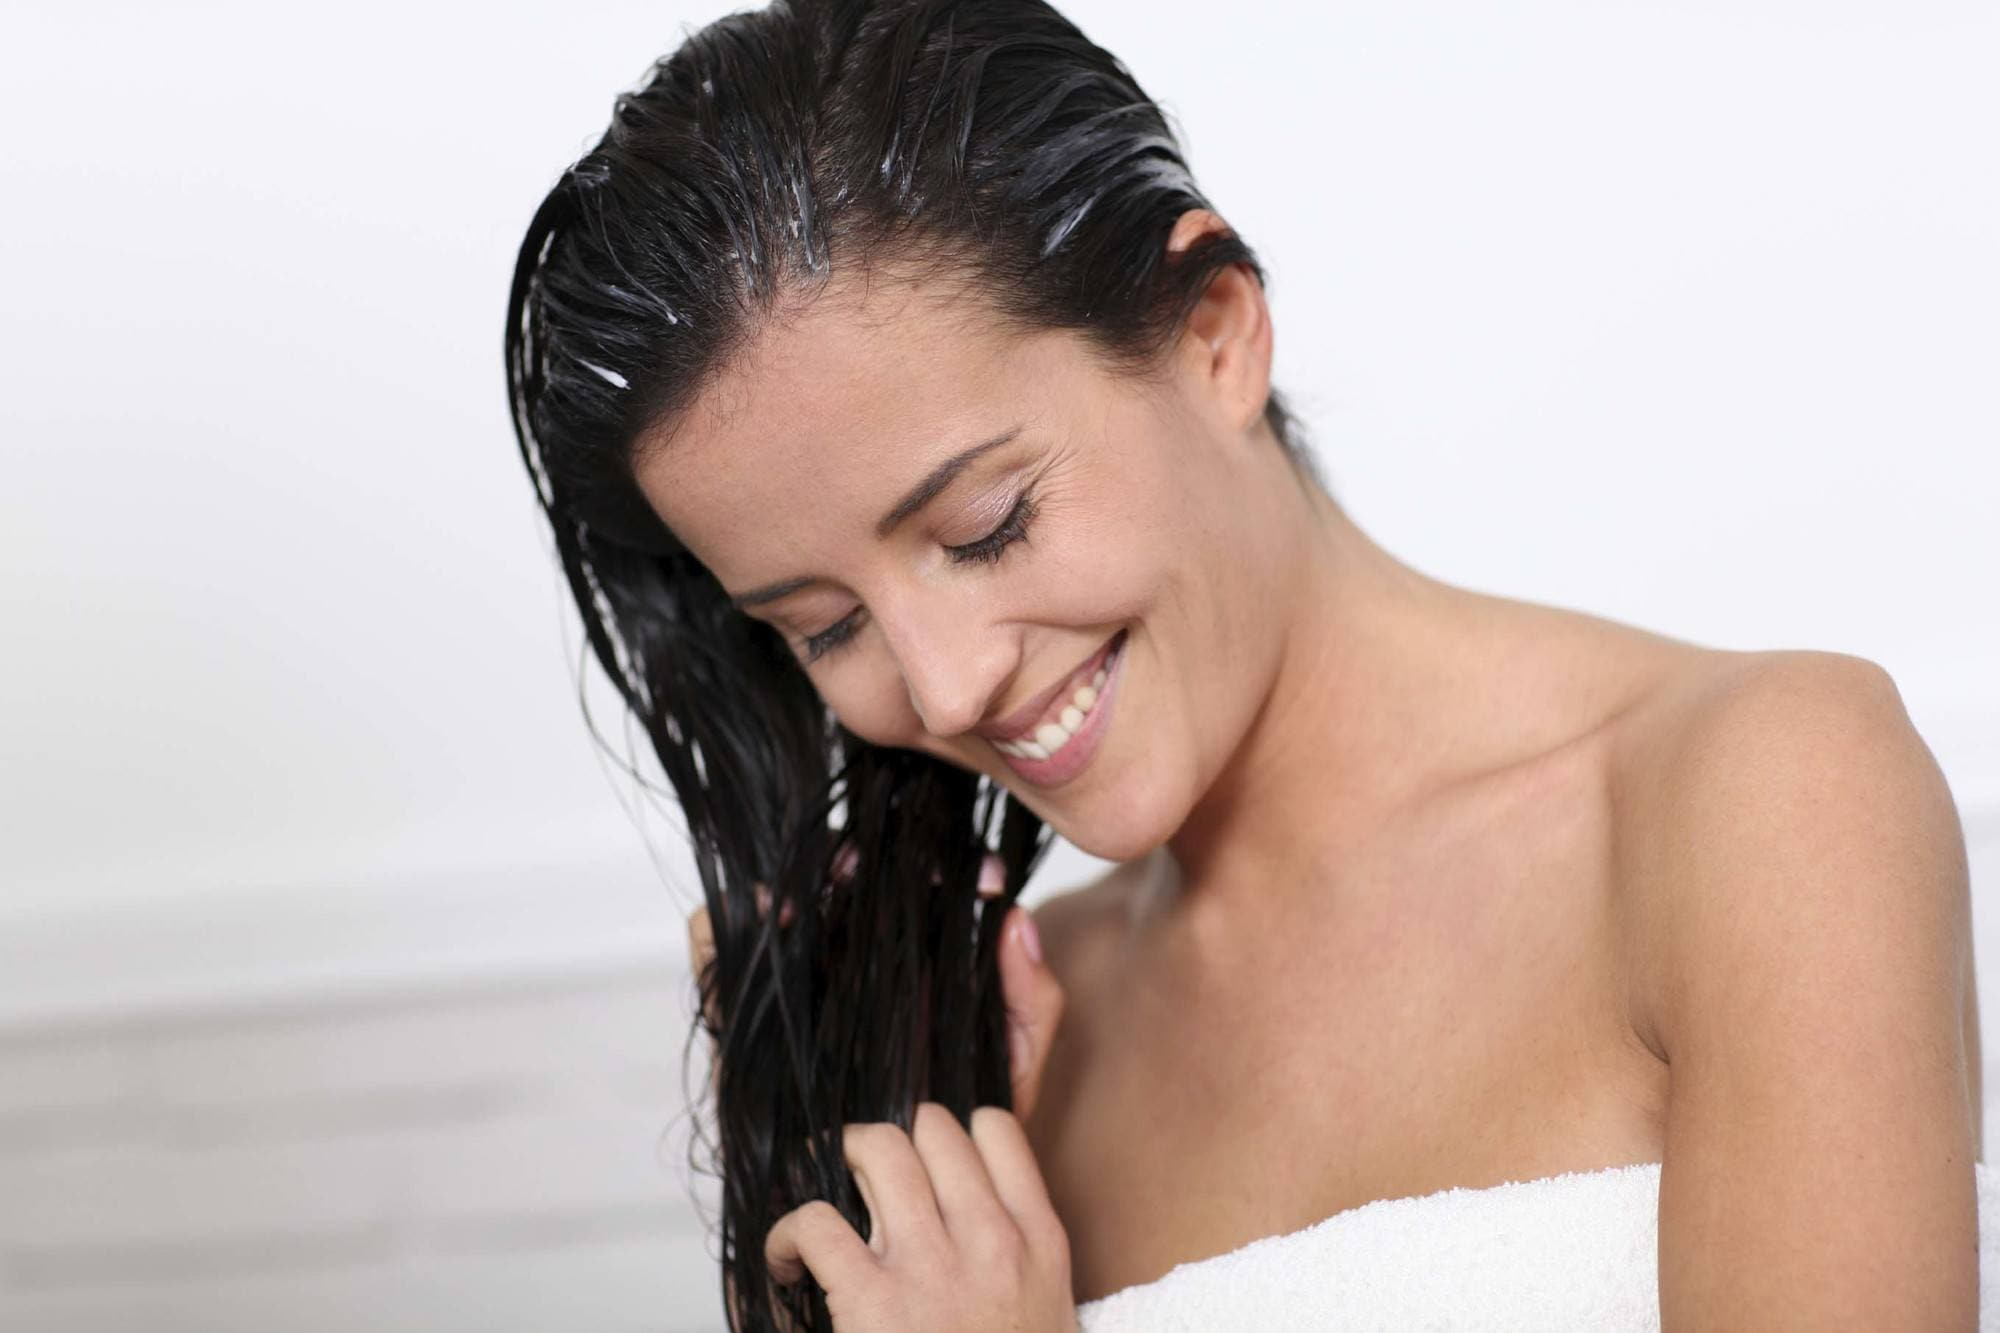 How to wash hair with conditioner